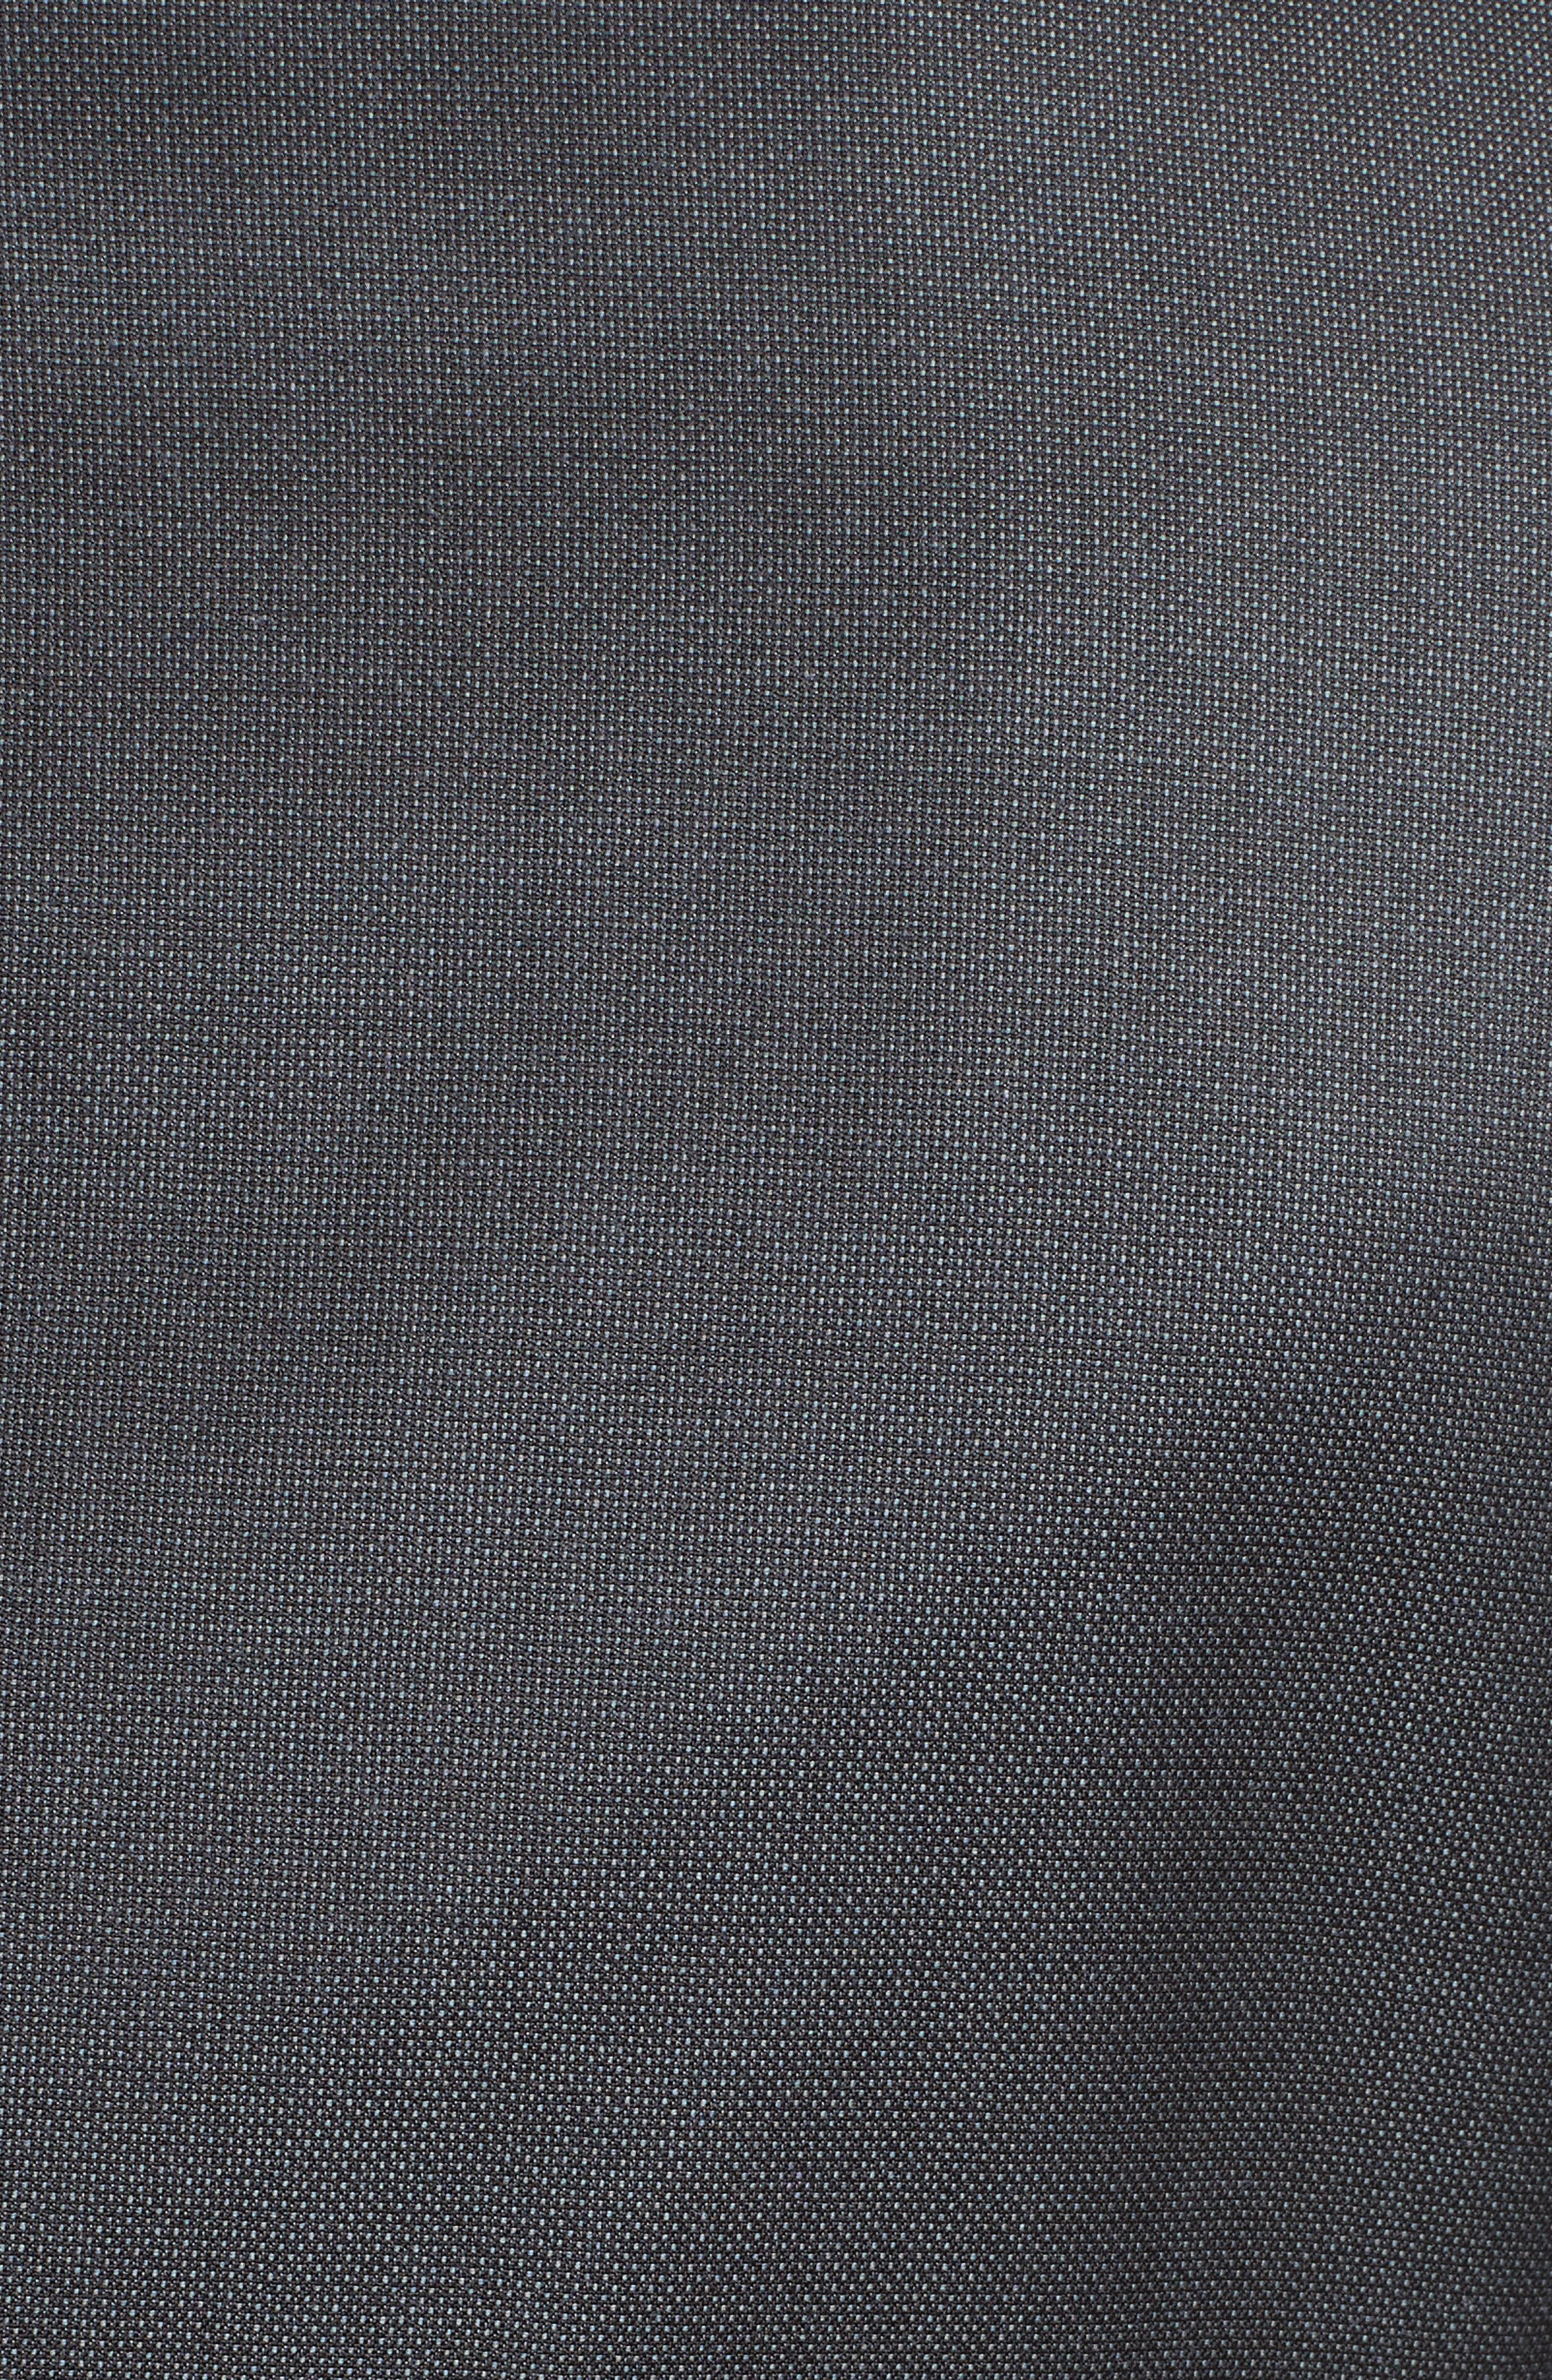 Classic Fit Solid Wool Suit,                             Alternate thumbnail 7, color,                             020